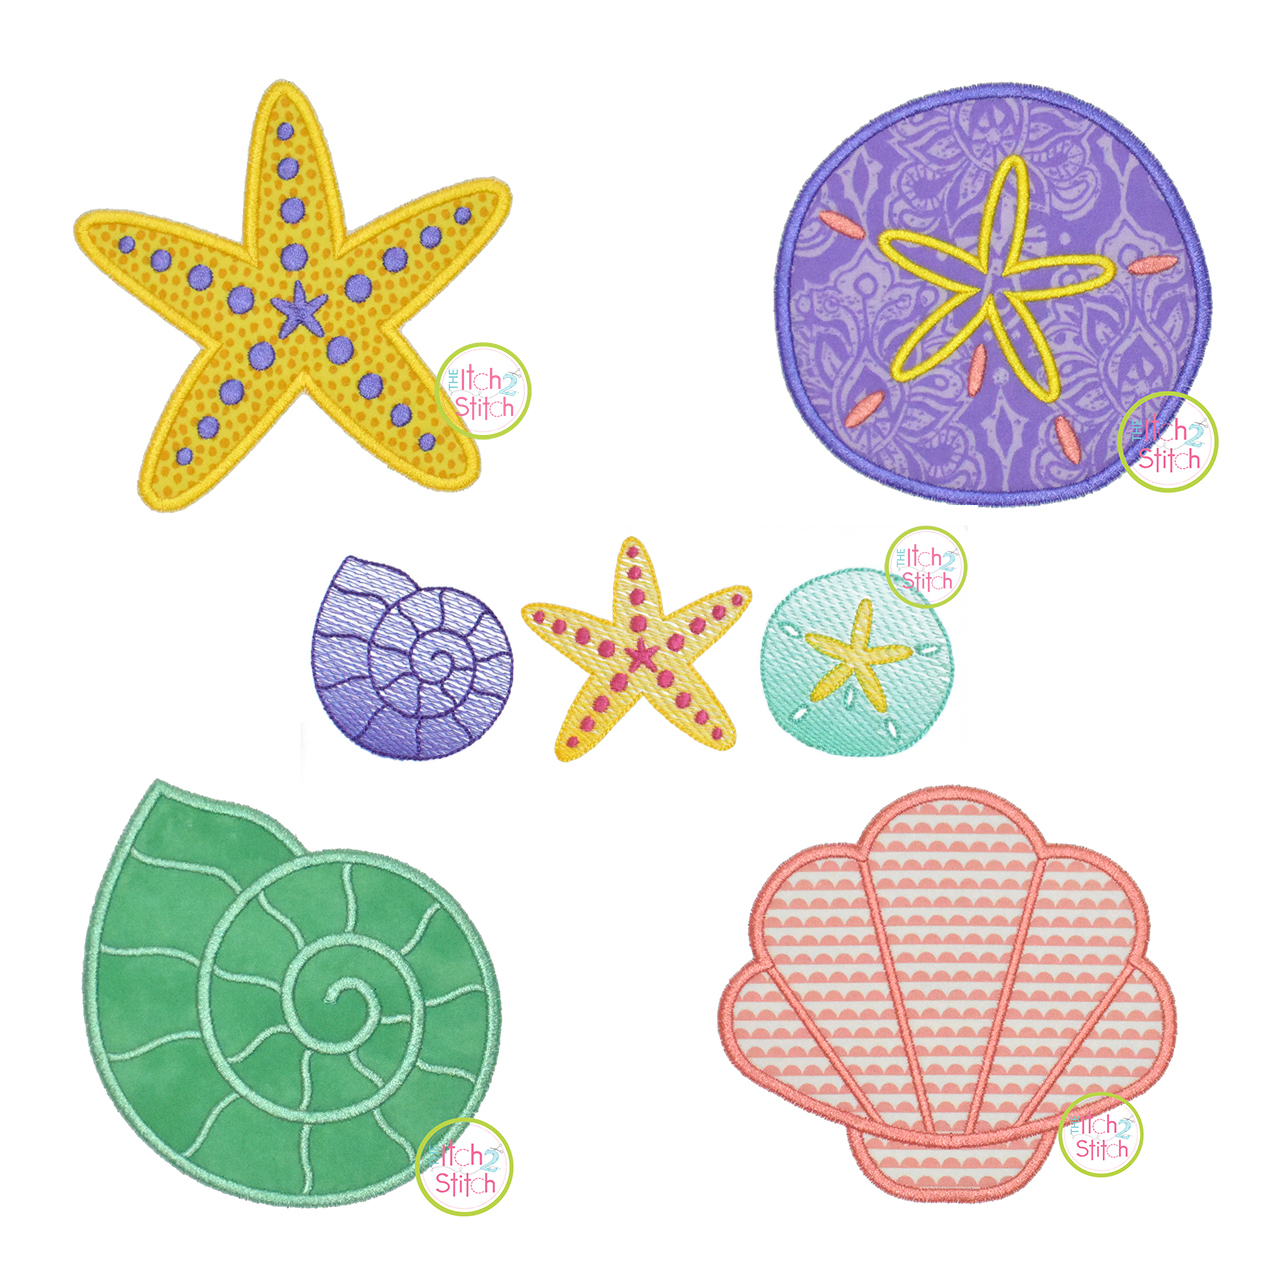 Conch Shell 12 Pieces Palm Tree Flip Flop Seashell Shoreside Nautical Seashell /& Island Miniature Beach Themed Arts and Crafts Stickers Starfish